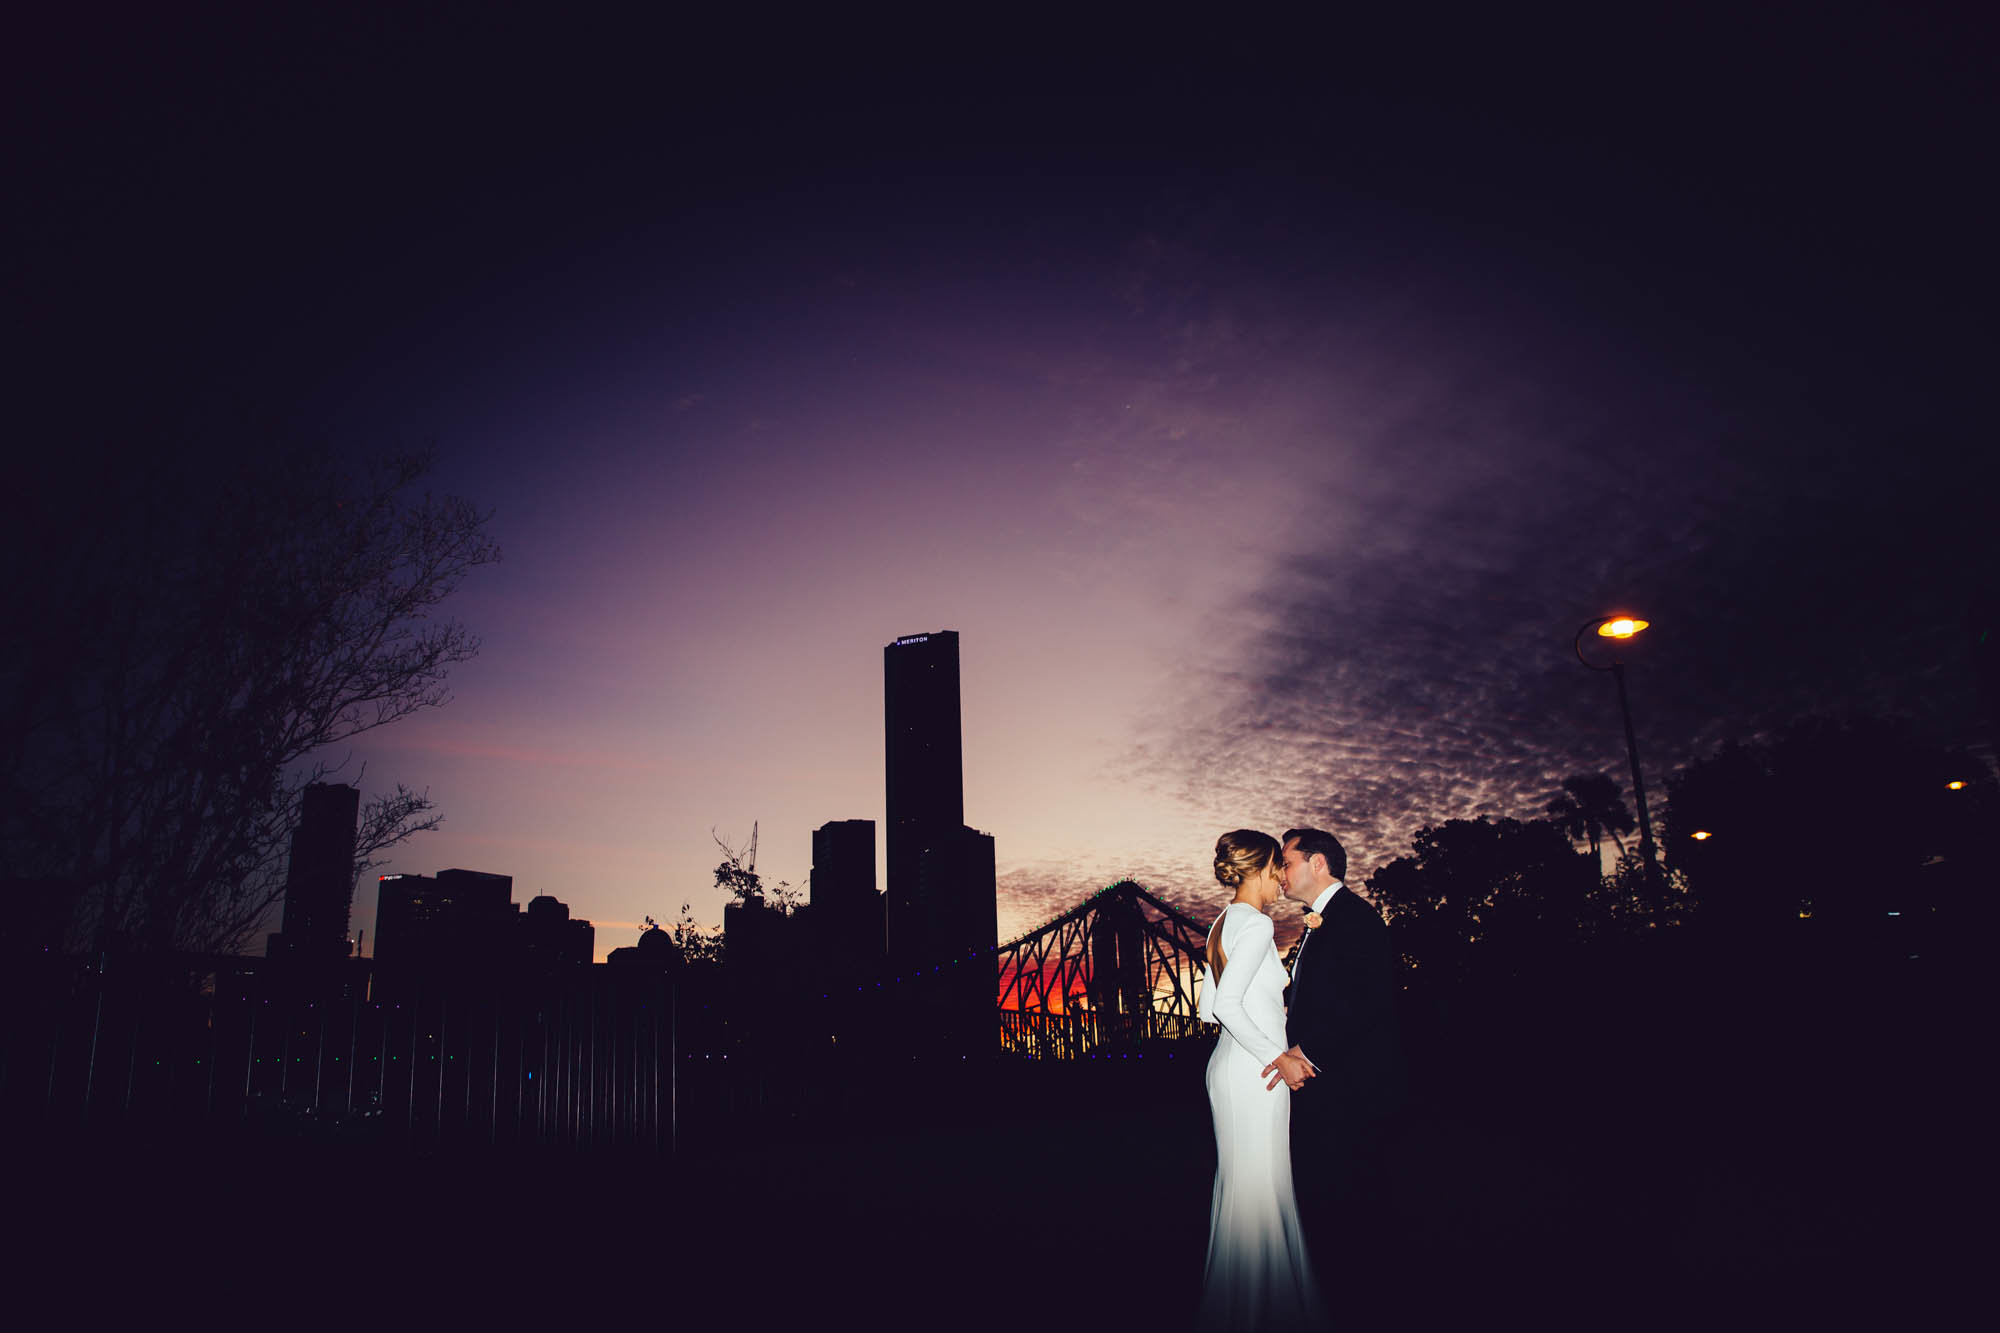 FreyaMarty_AlbertStUnitingChurch_BrisbaneWeddingPhotography_AnnaOsetroff_LongTimeReception-55